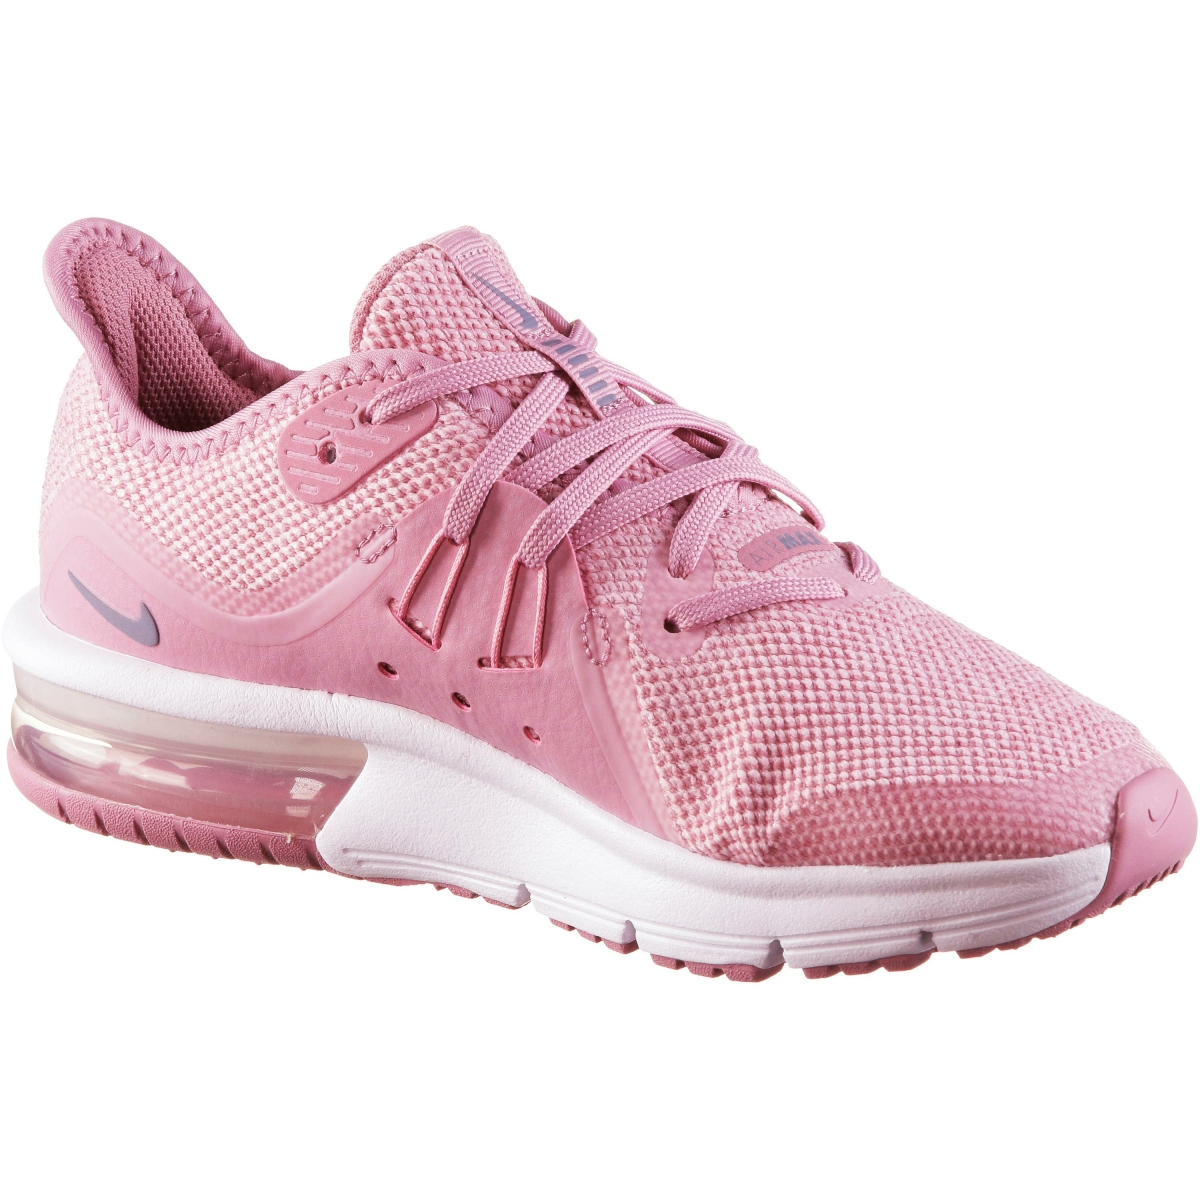 fe4584562c Nike Air Max Sequent 3 GS in pink - 922885-601   everysize